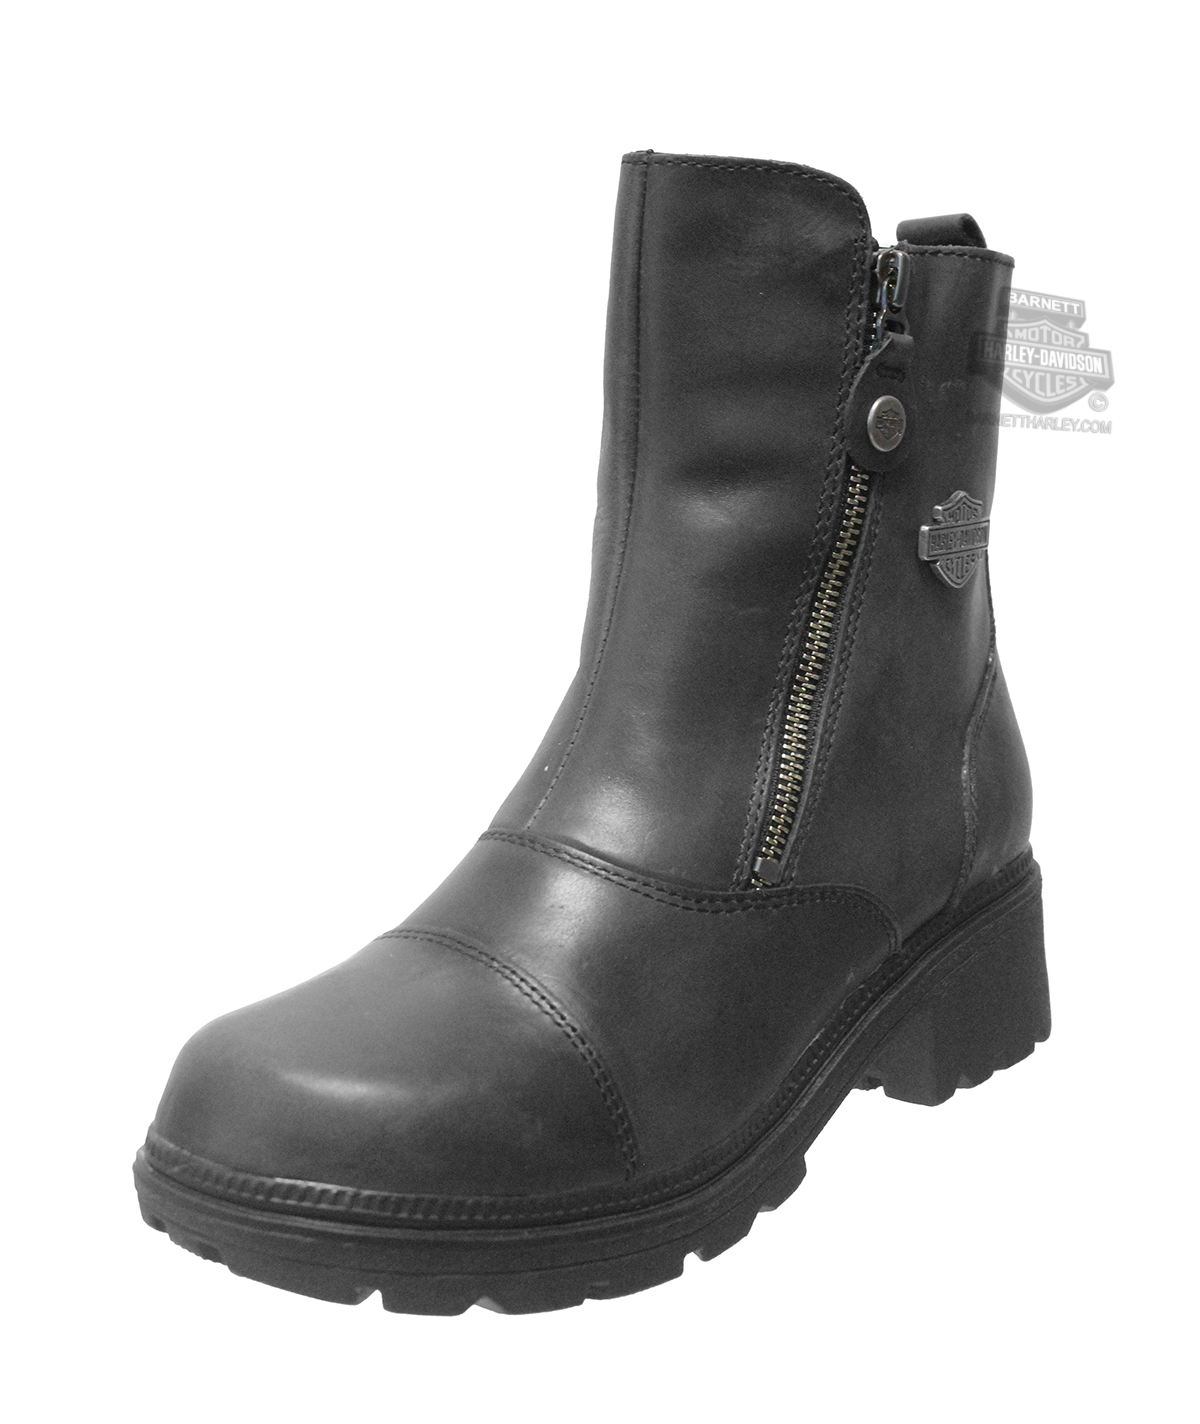 5daccc45b62 84236 - Harley-Davidson® Womens Amherst Black Leather Low Cut Boot ...